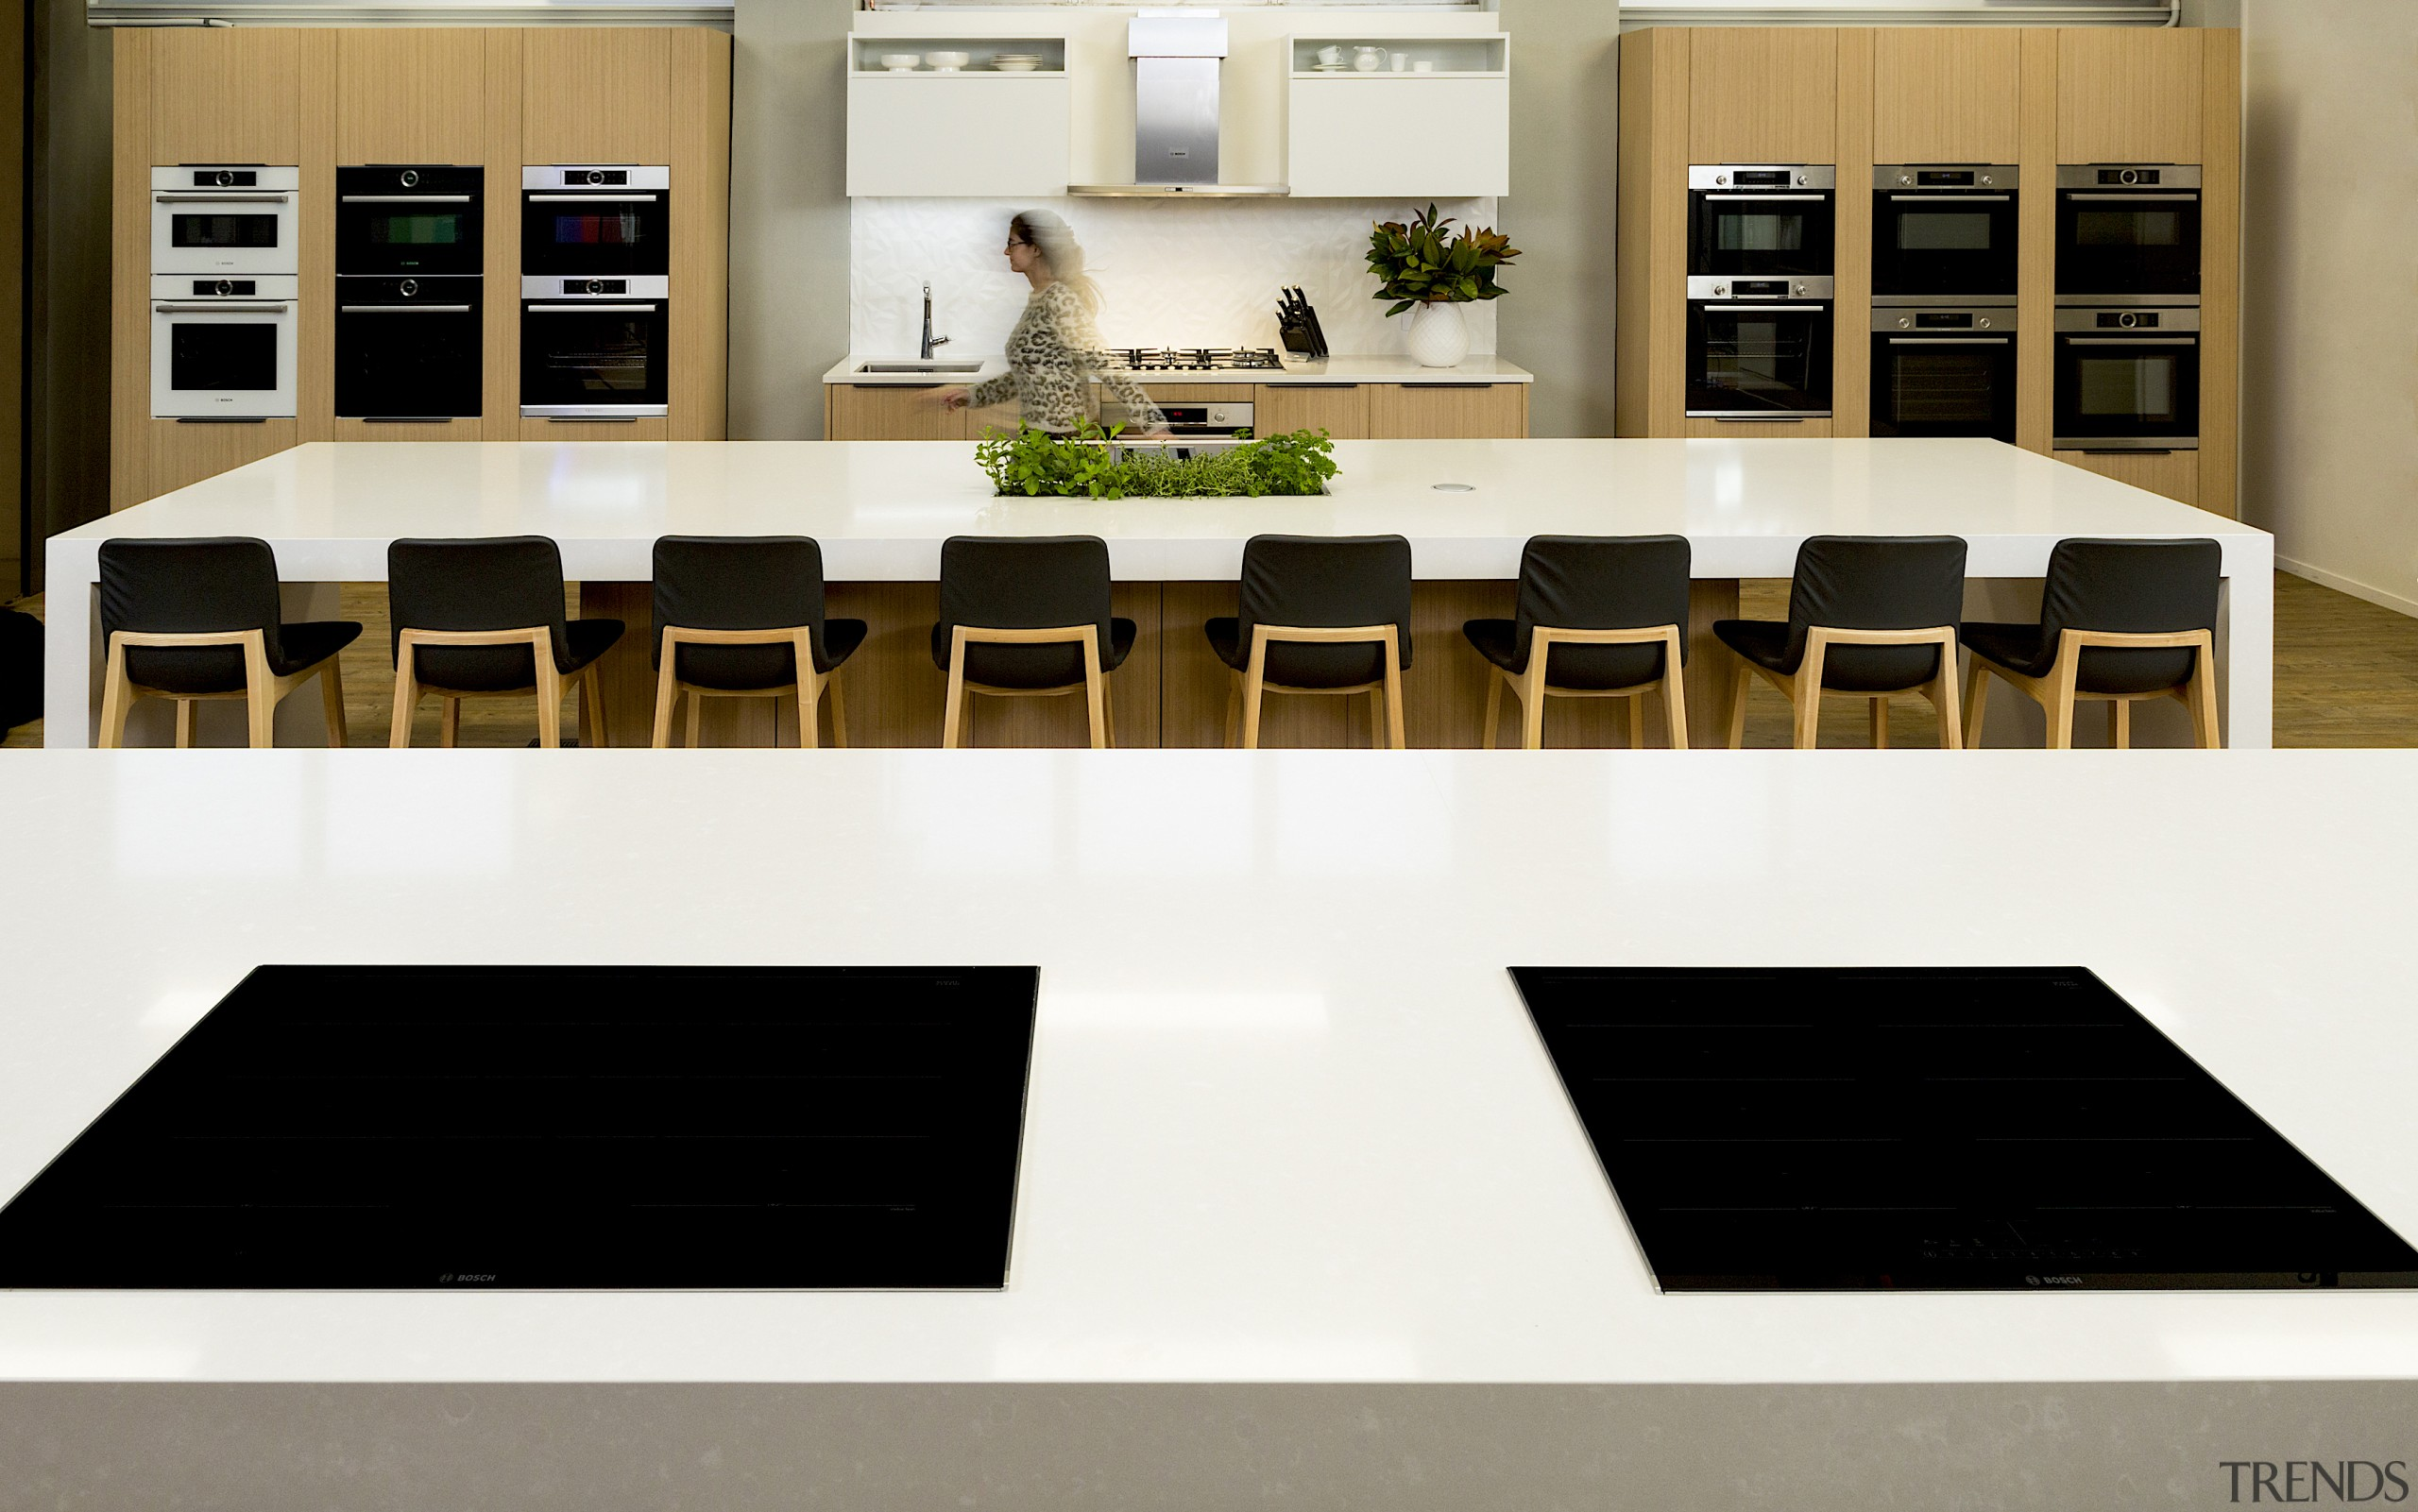 Crisp and uncluttered – this is the immaculate white